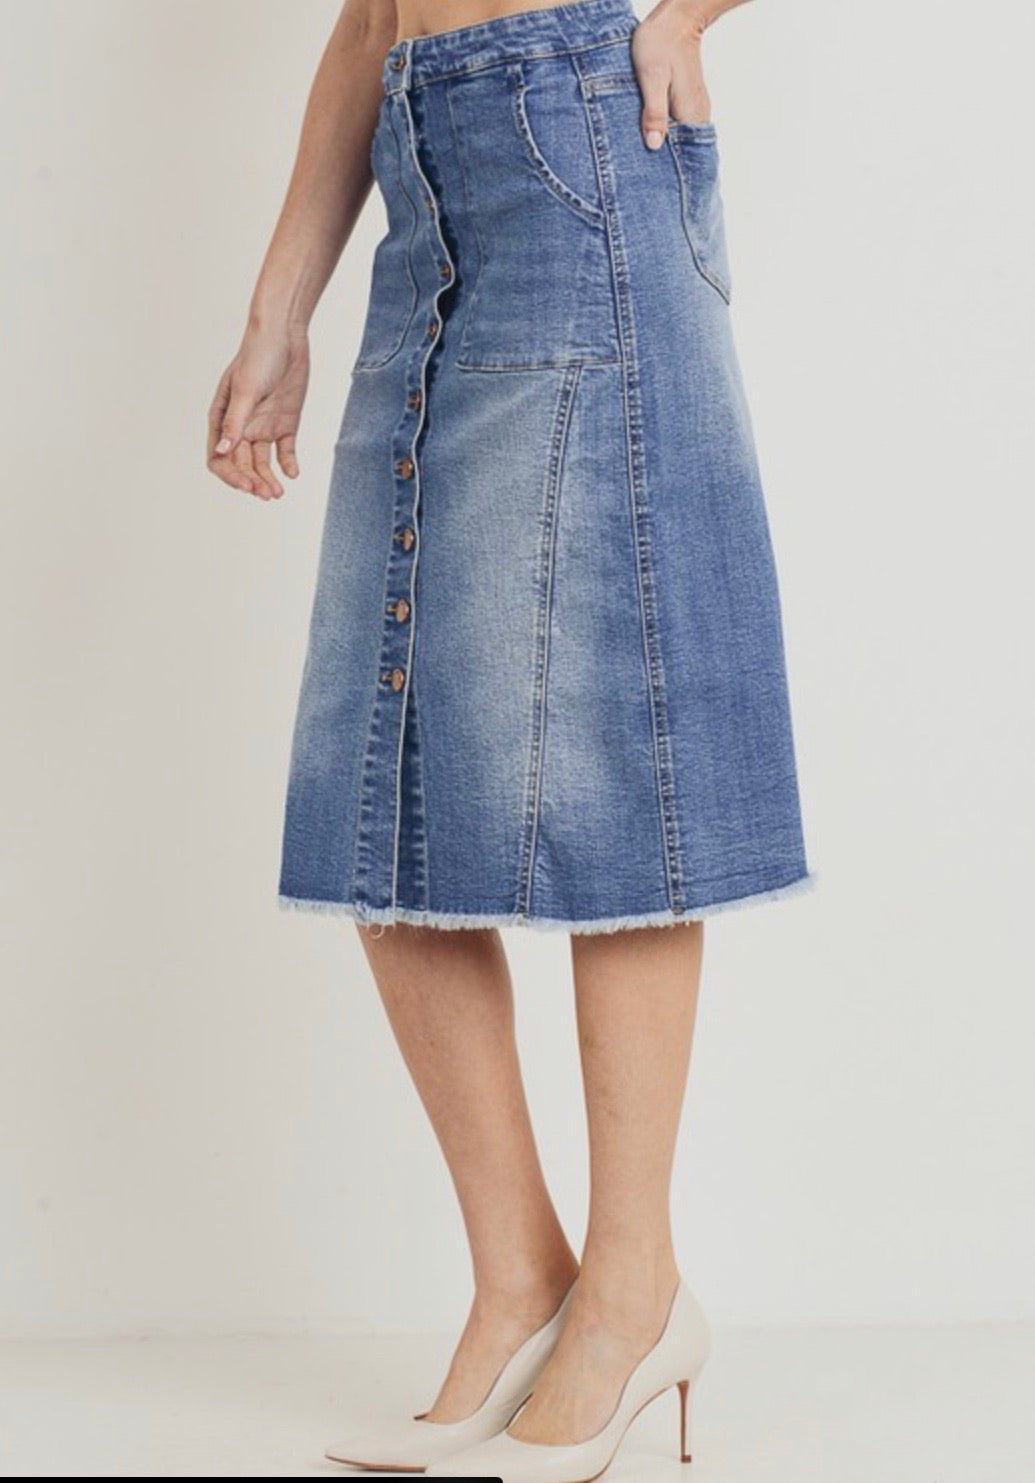 Kansas City, High Waisted, button front, Denim, Midi Skirt